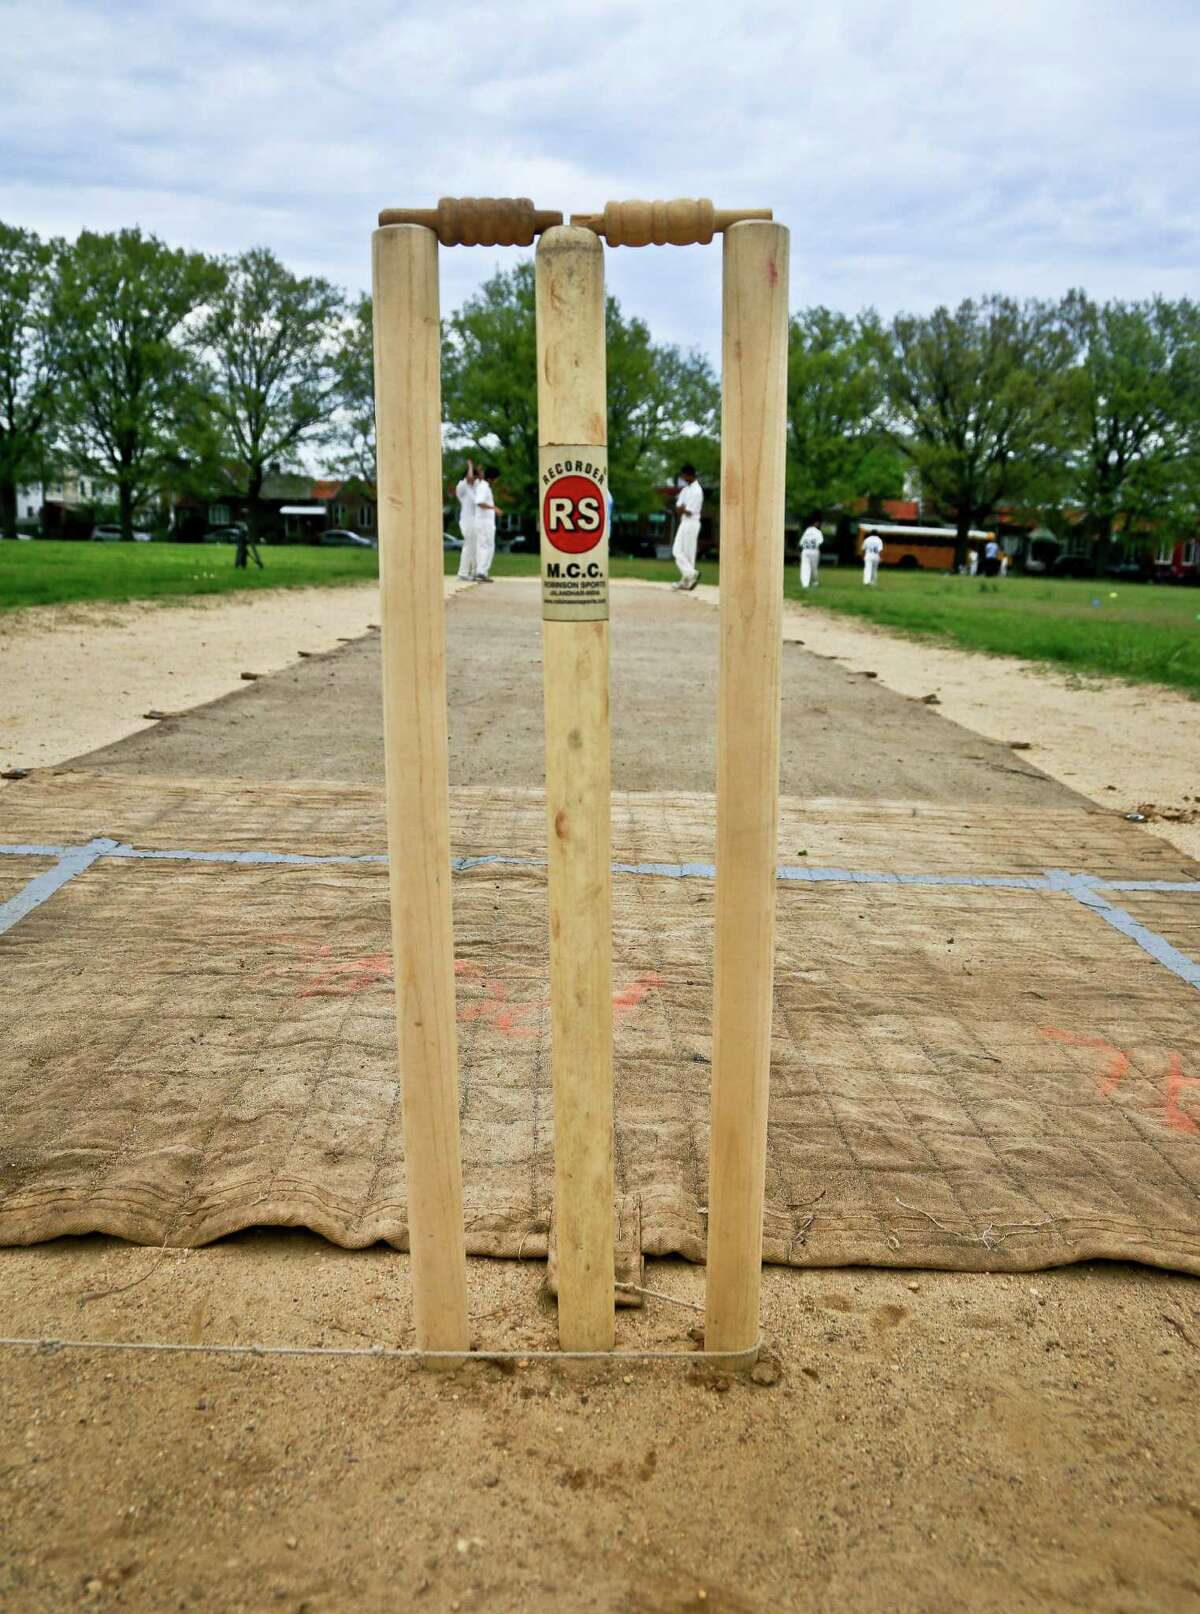 In this May 12, 2014 photo, a wicket - three wooden stump poles topped with two wooden crosspieces called bails - is set up for a Public School Athletic League (PSAL) cricket match between John Adams and Midwood high schools, at Marine Park in the Brooklyn borough of New York. The wicket, at the heart of a cricket match, is defended by a batsman who attempts to prevent a bowler's ball from hitting the wicket by first striking the ball to score